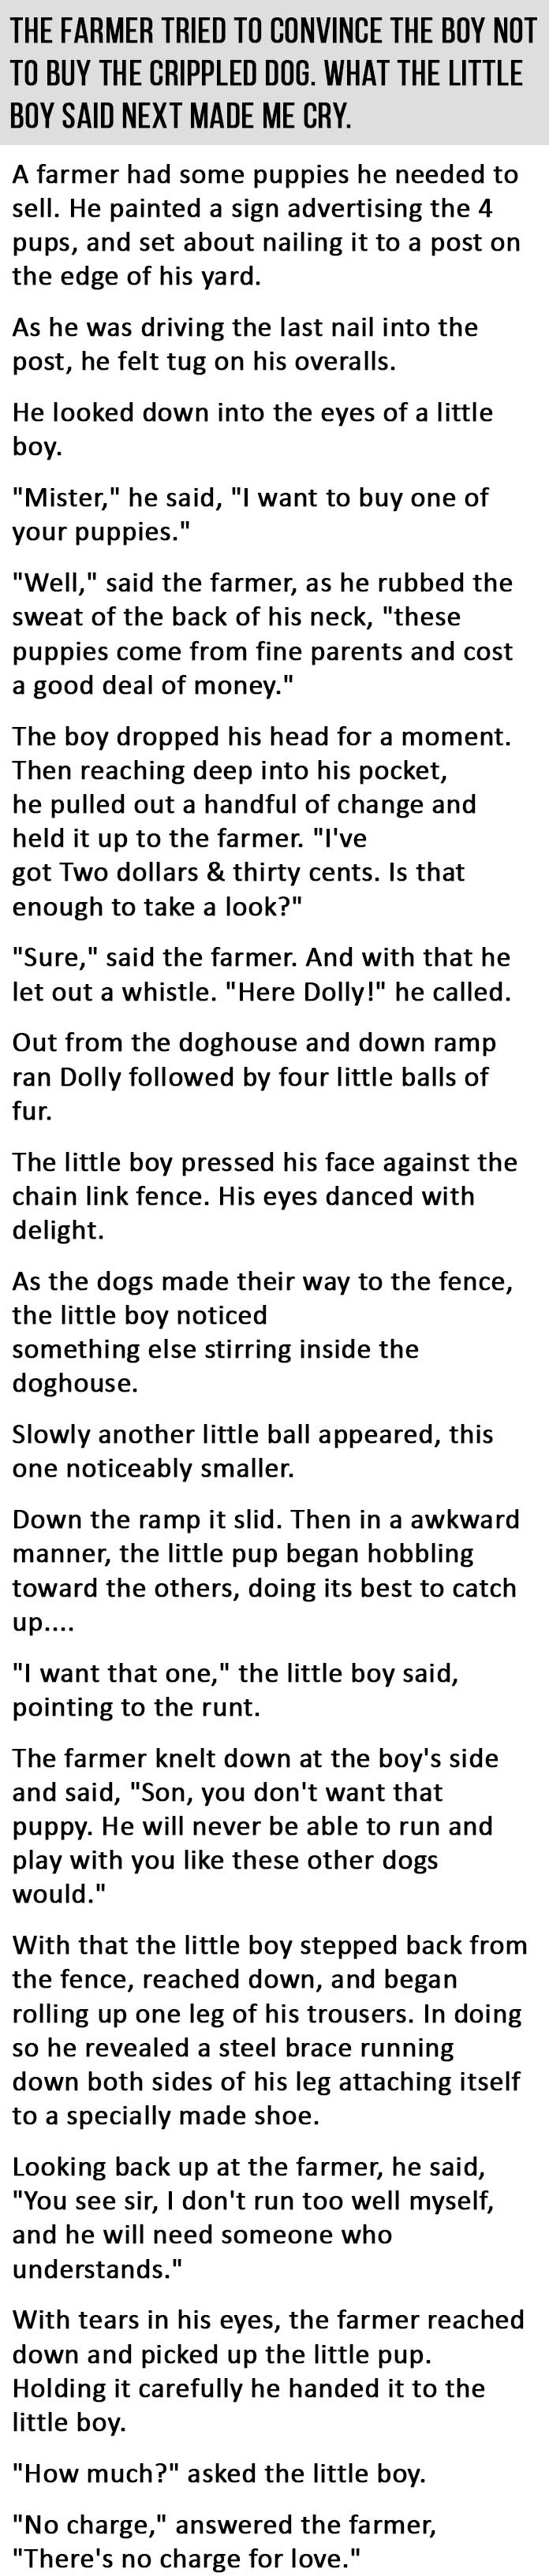 He Tried To Convince The Boy Not To Buy The Crippled Puppy. What The Boy Said Next Made Me Cry.